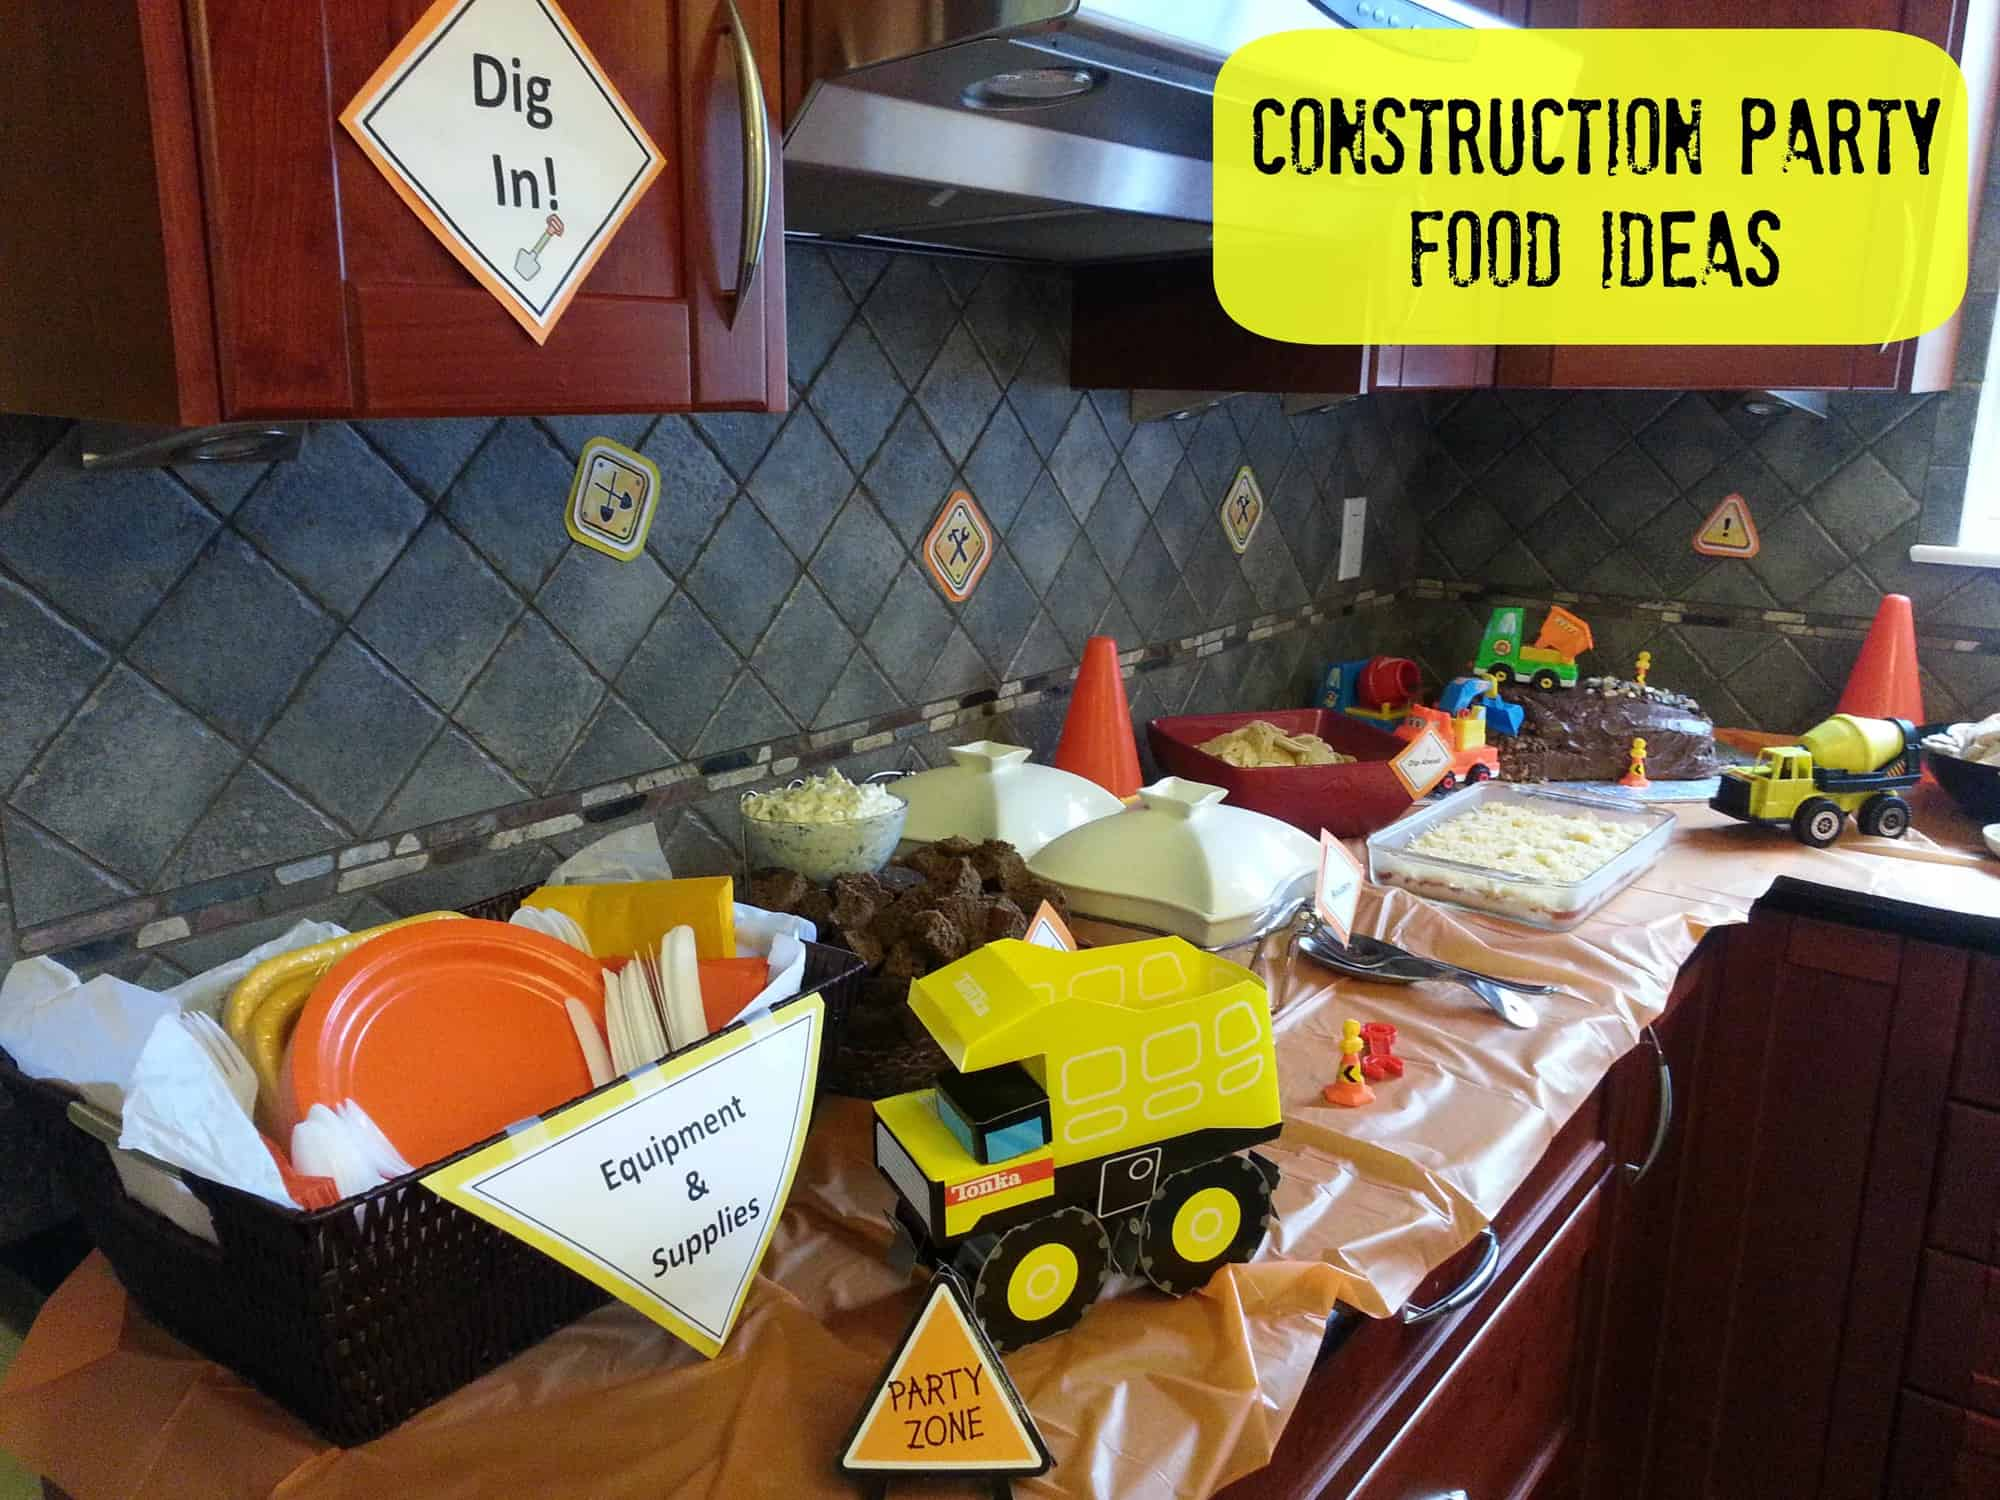 Kids Birthday Party Ideas: Food for a Construction Birthday Party